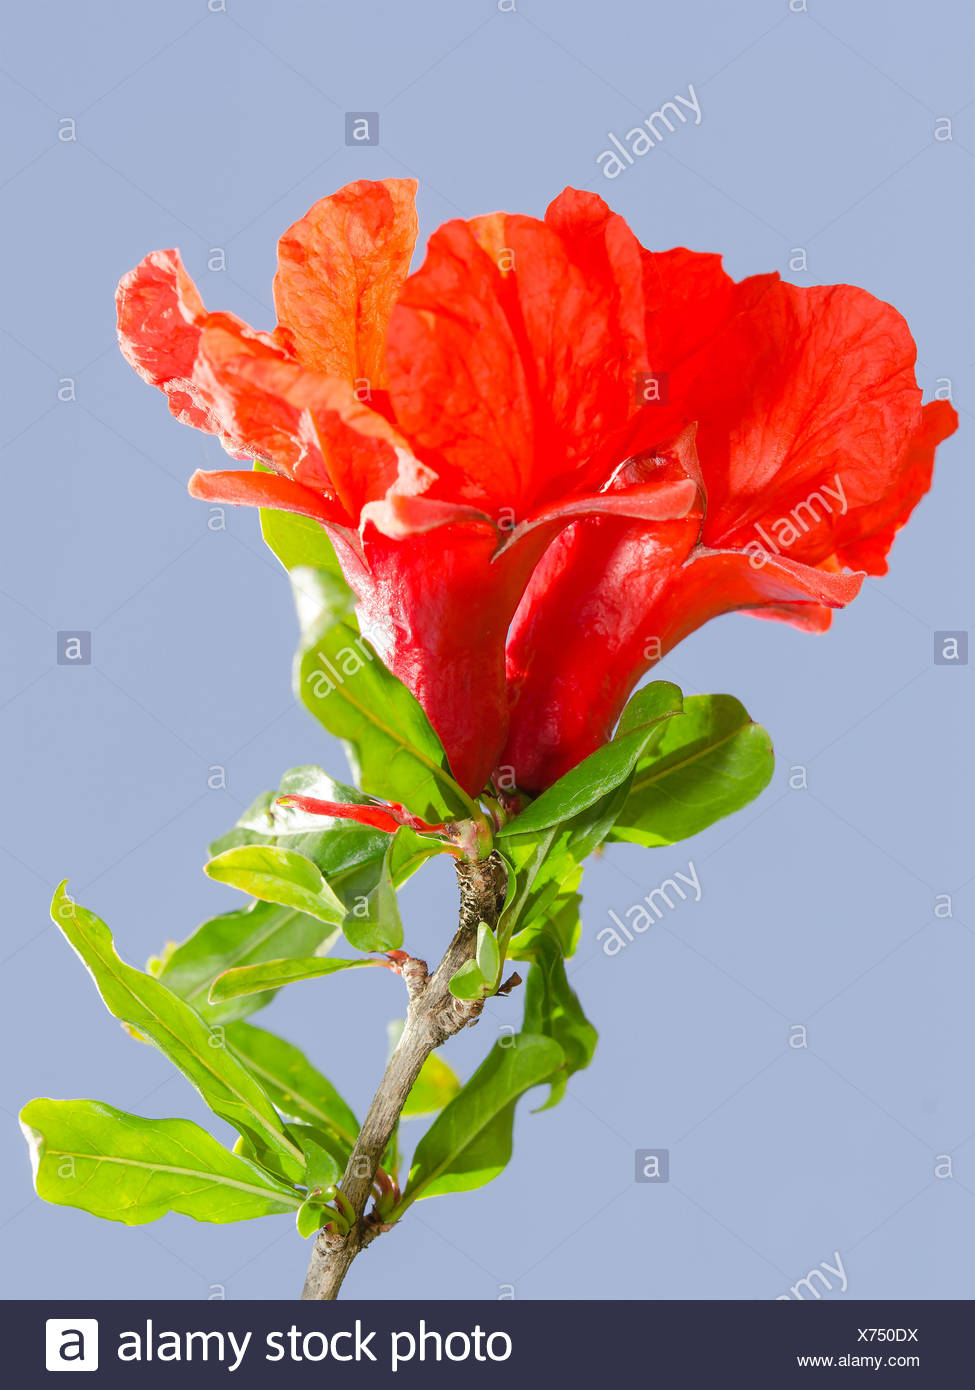 Bright Red Pomegranate Flowers Ovary And Petals Against Clear Blue